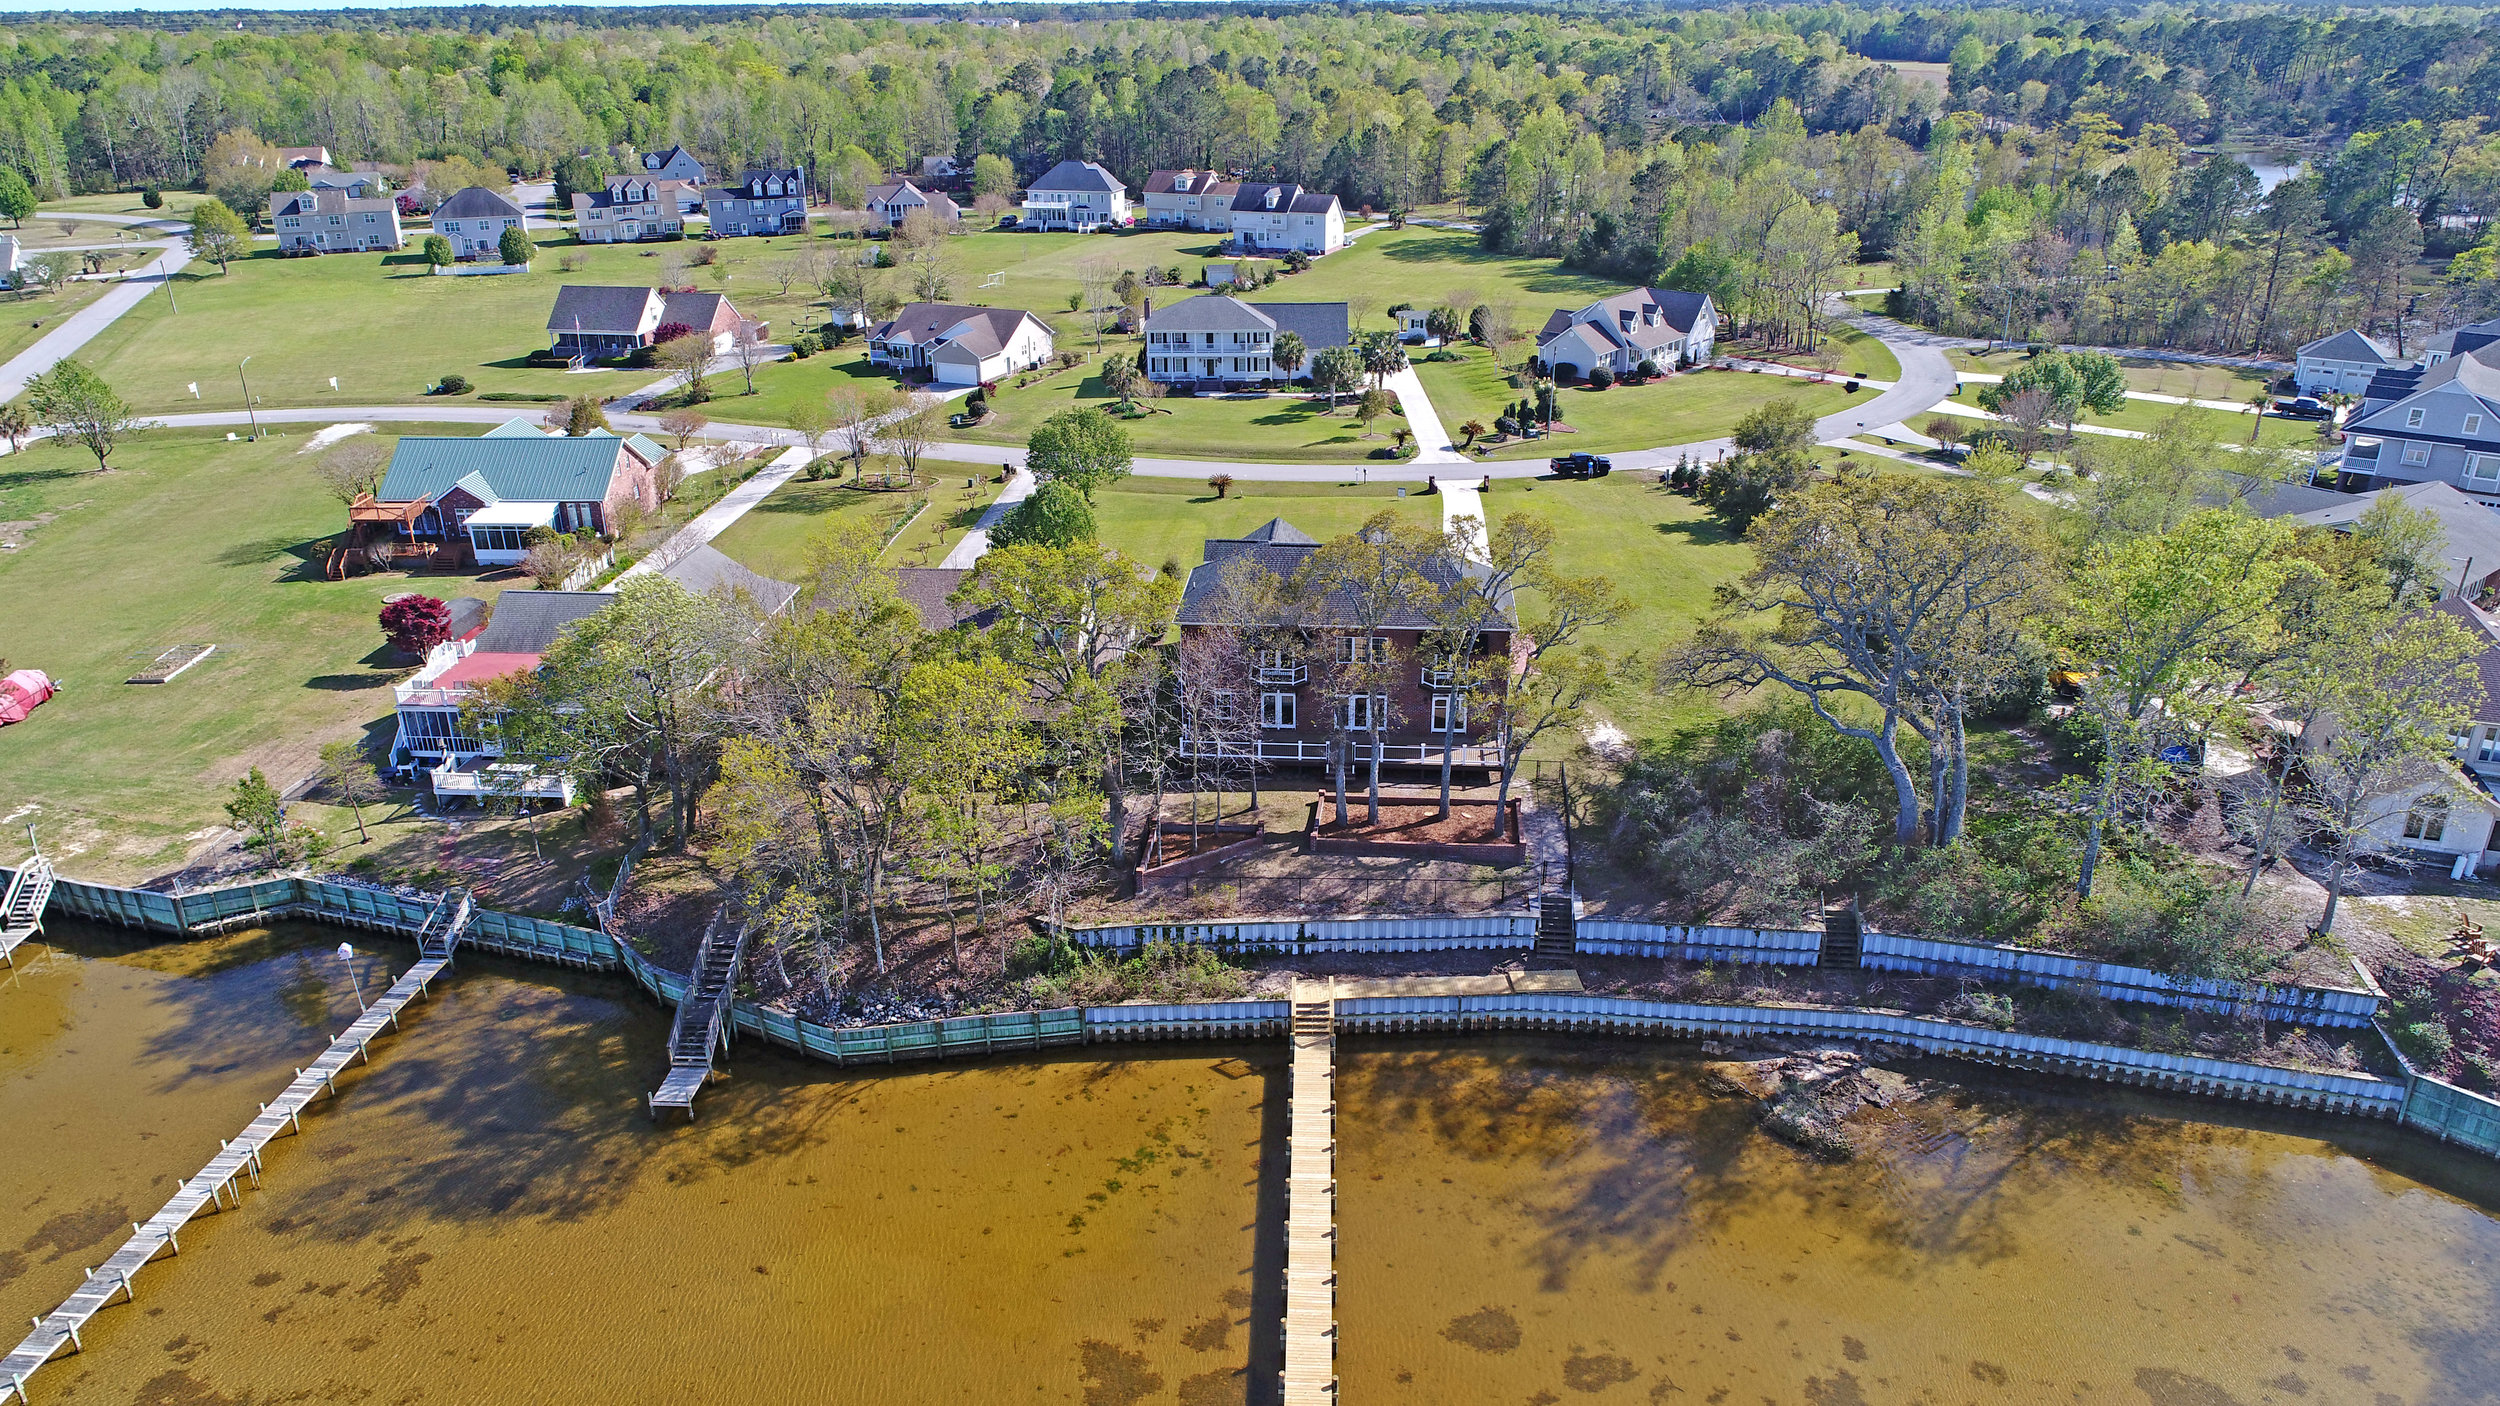 710 Willbrook Cir Sneads Ferry-print-064-67-DJI 0055-4200x2363-300dpi.jpg